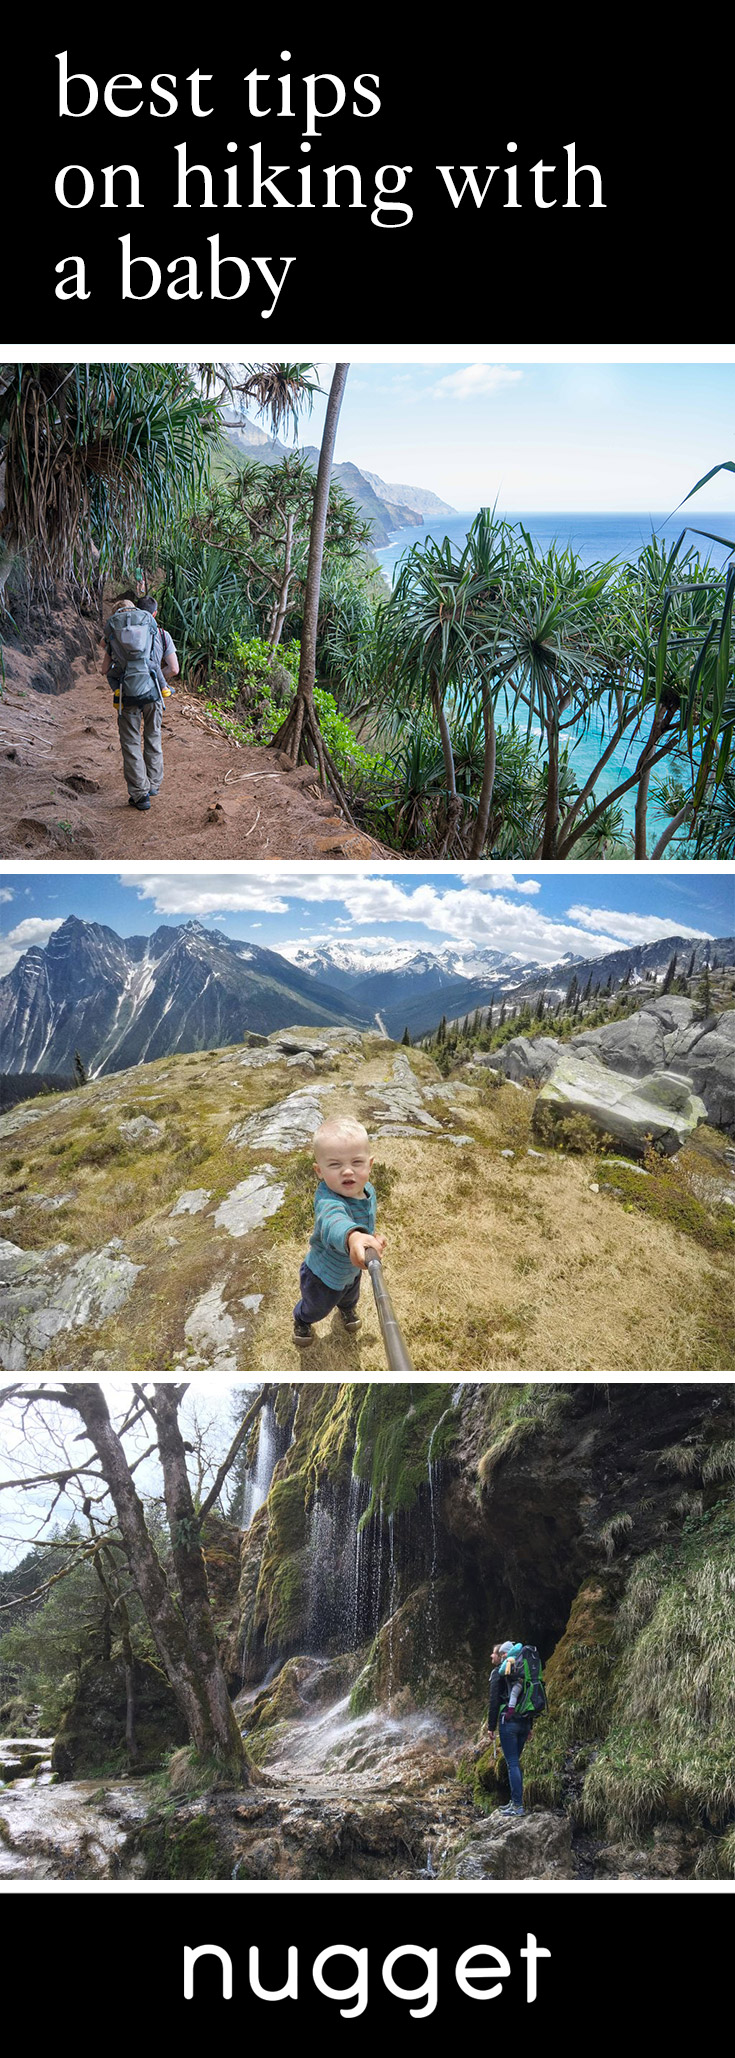 Going on a Hike: Our Contributors' Best Tips on Hiking with a Baby